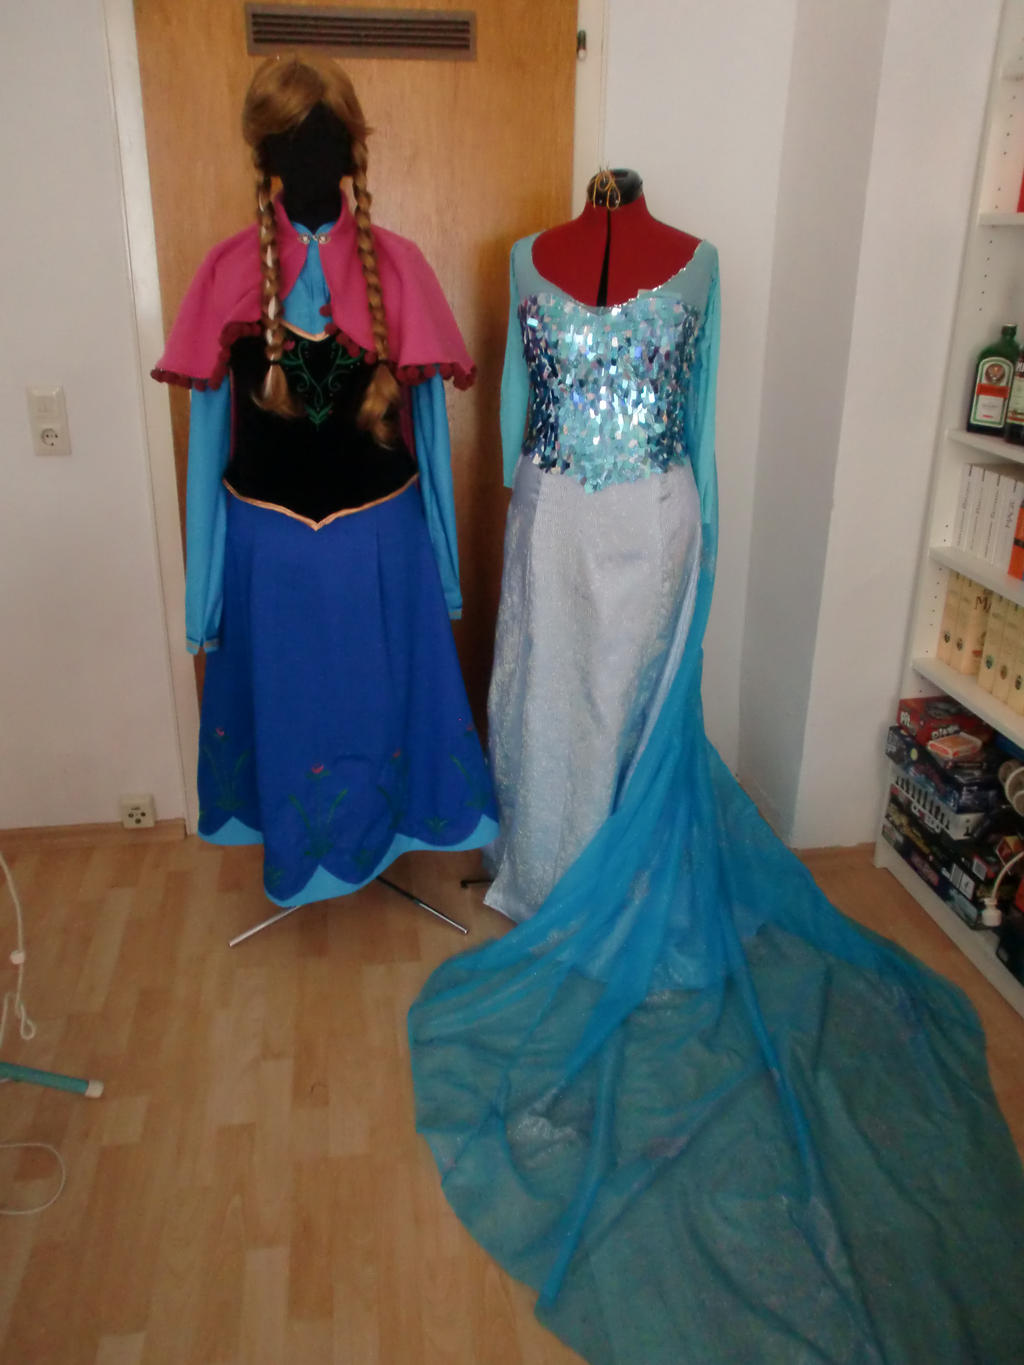 frozen elsa and anna costumes by cheshirecat1 on deviantart. Black Bedroom Furniture Sets. Home Design Ideas